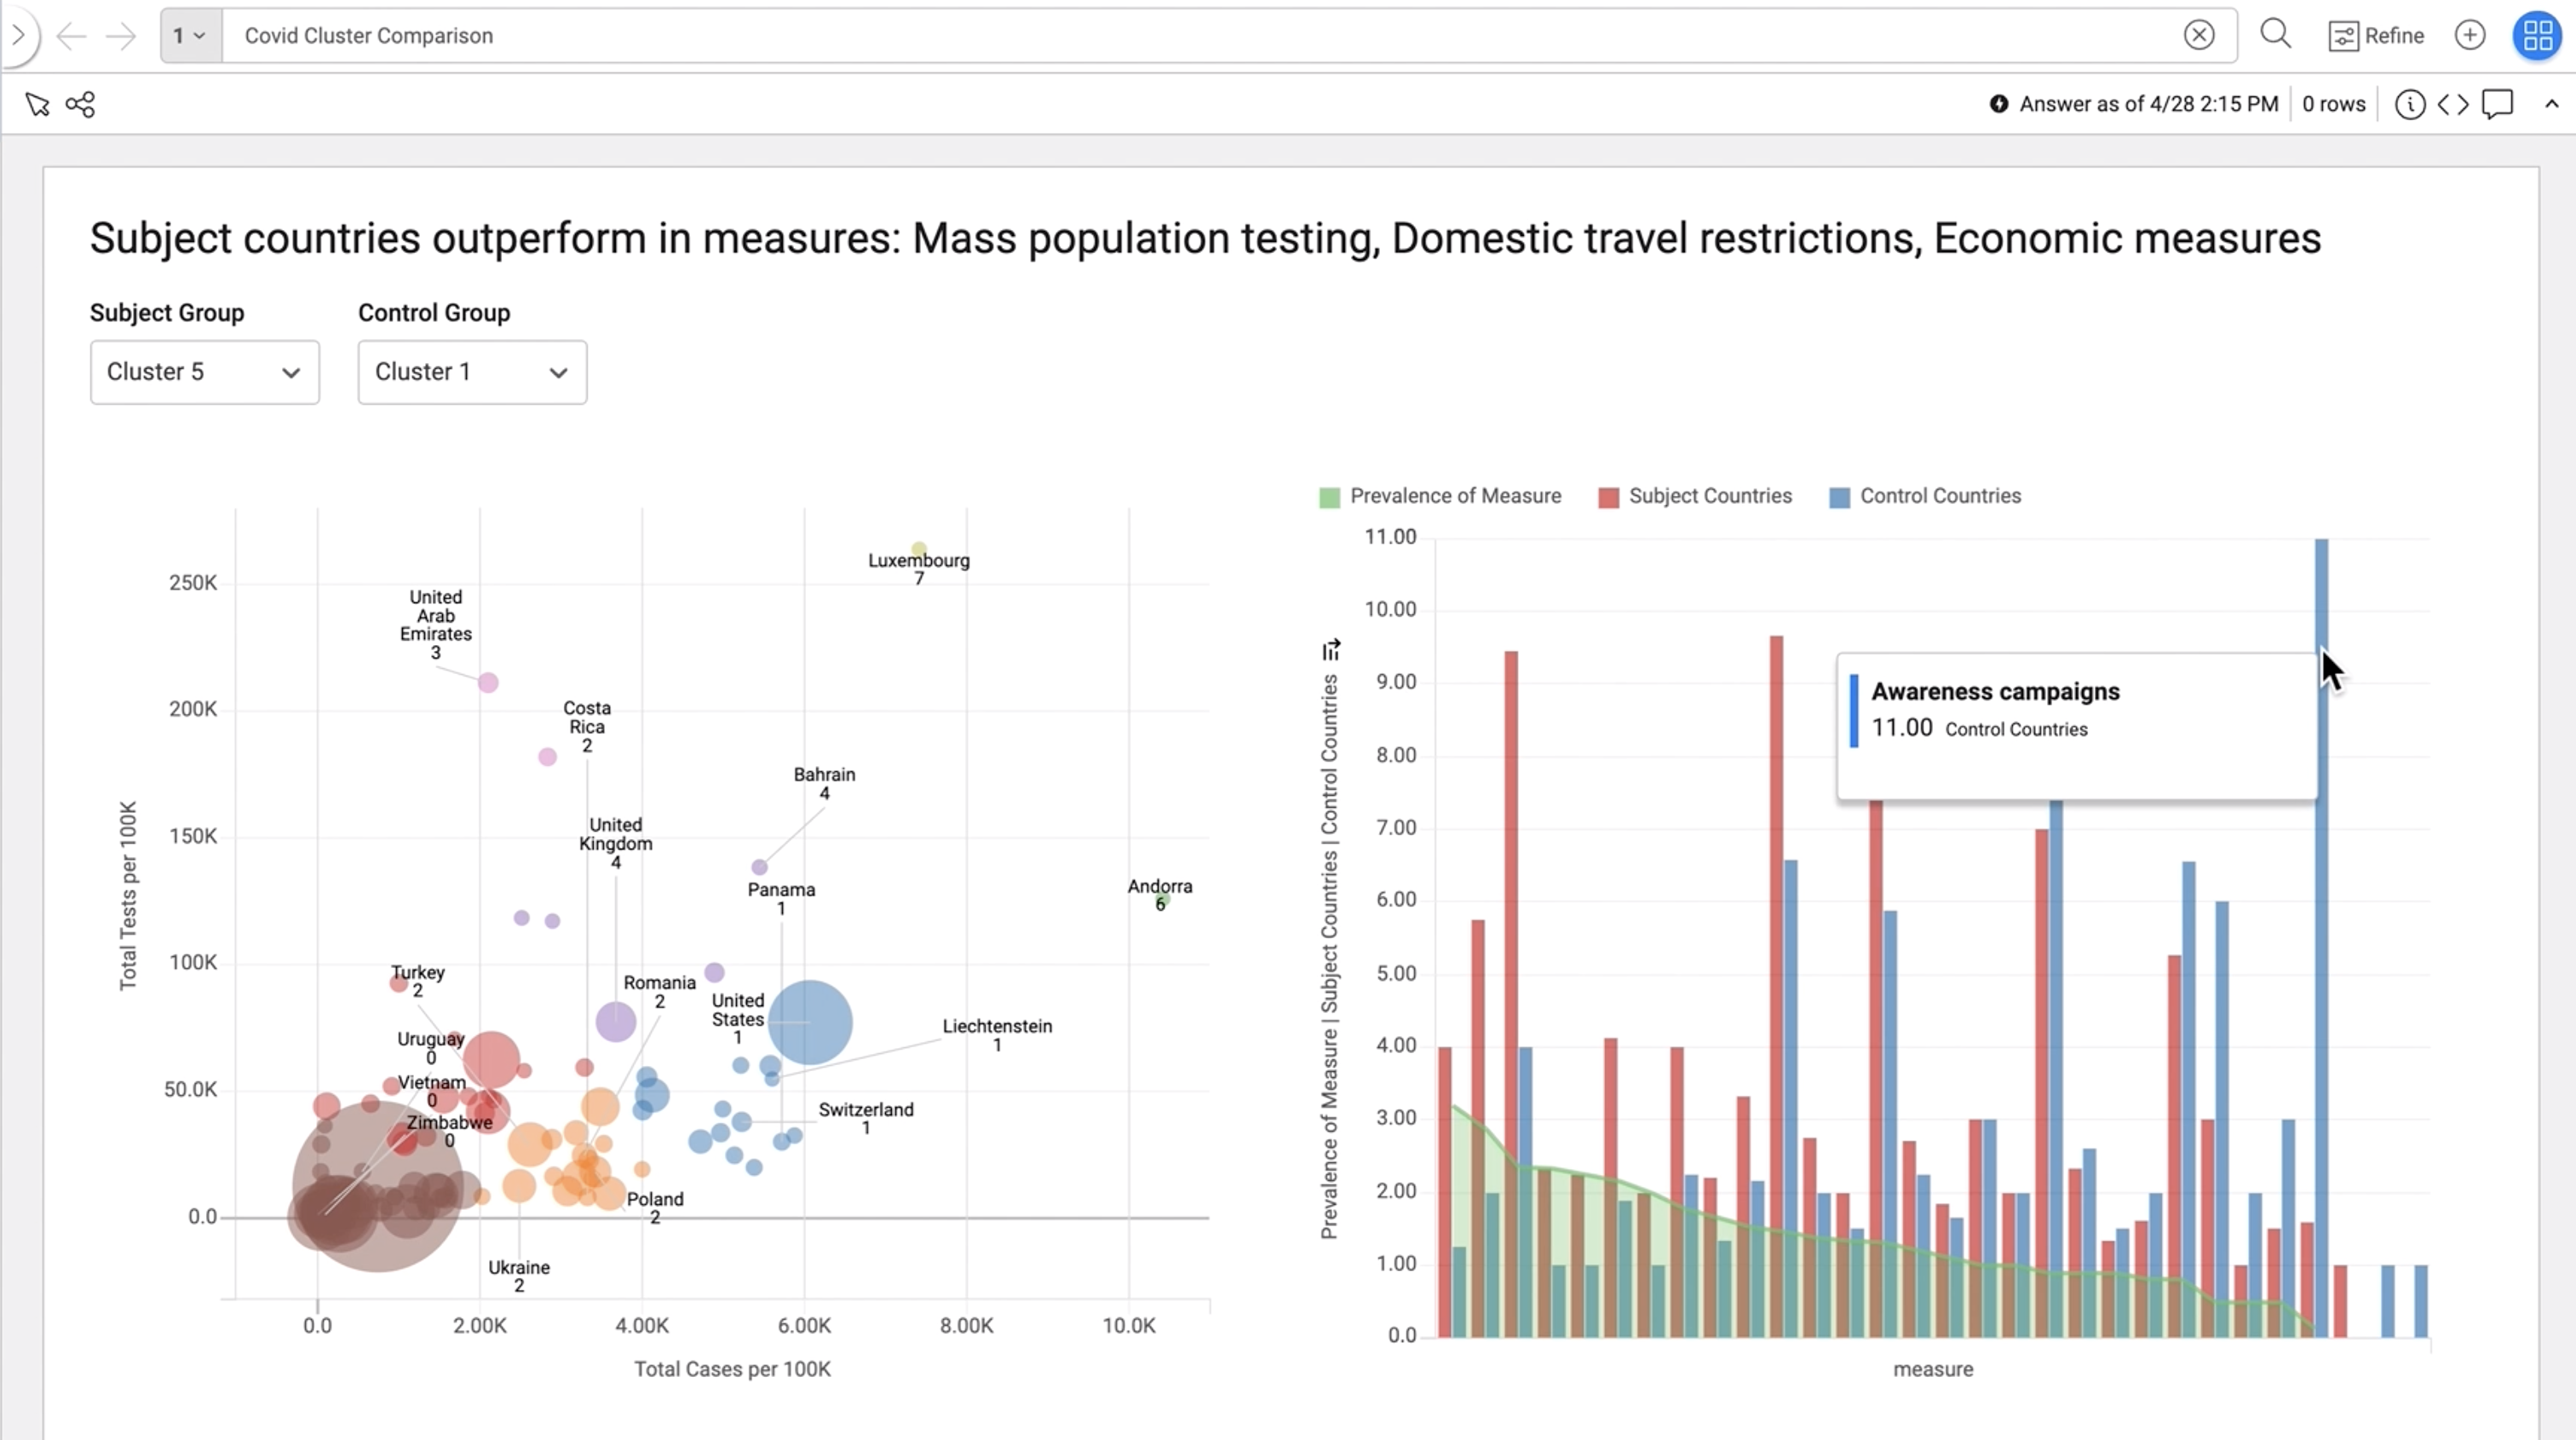 This cluster comparison shows that domestic travel restrictions and mass population testing were more effective measures than awareness campaigns